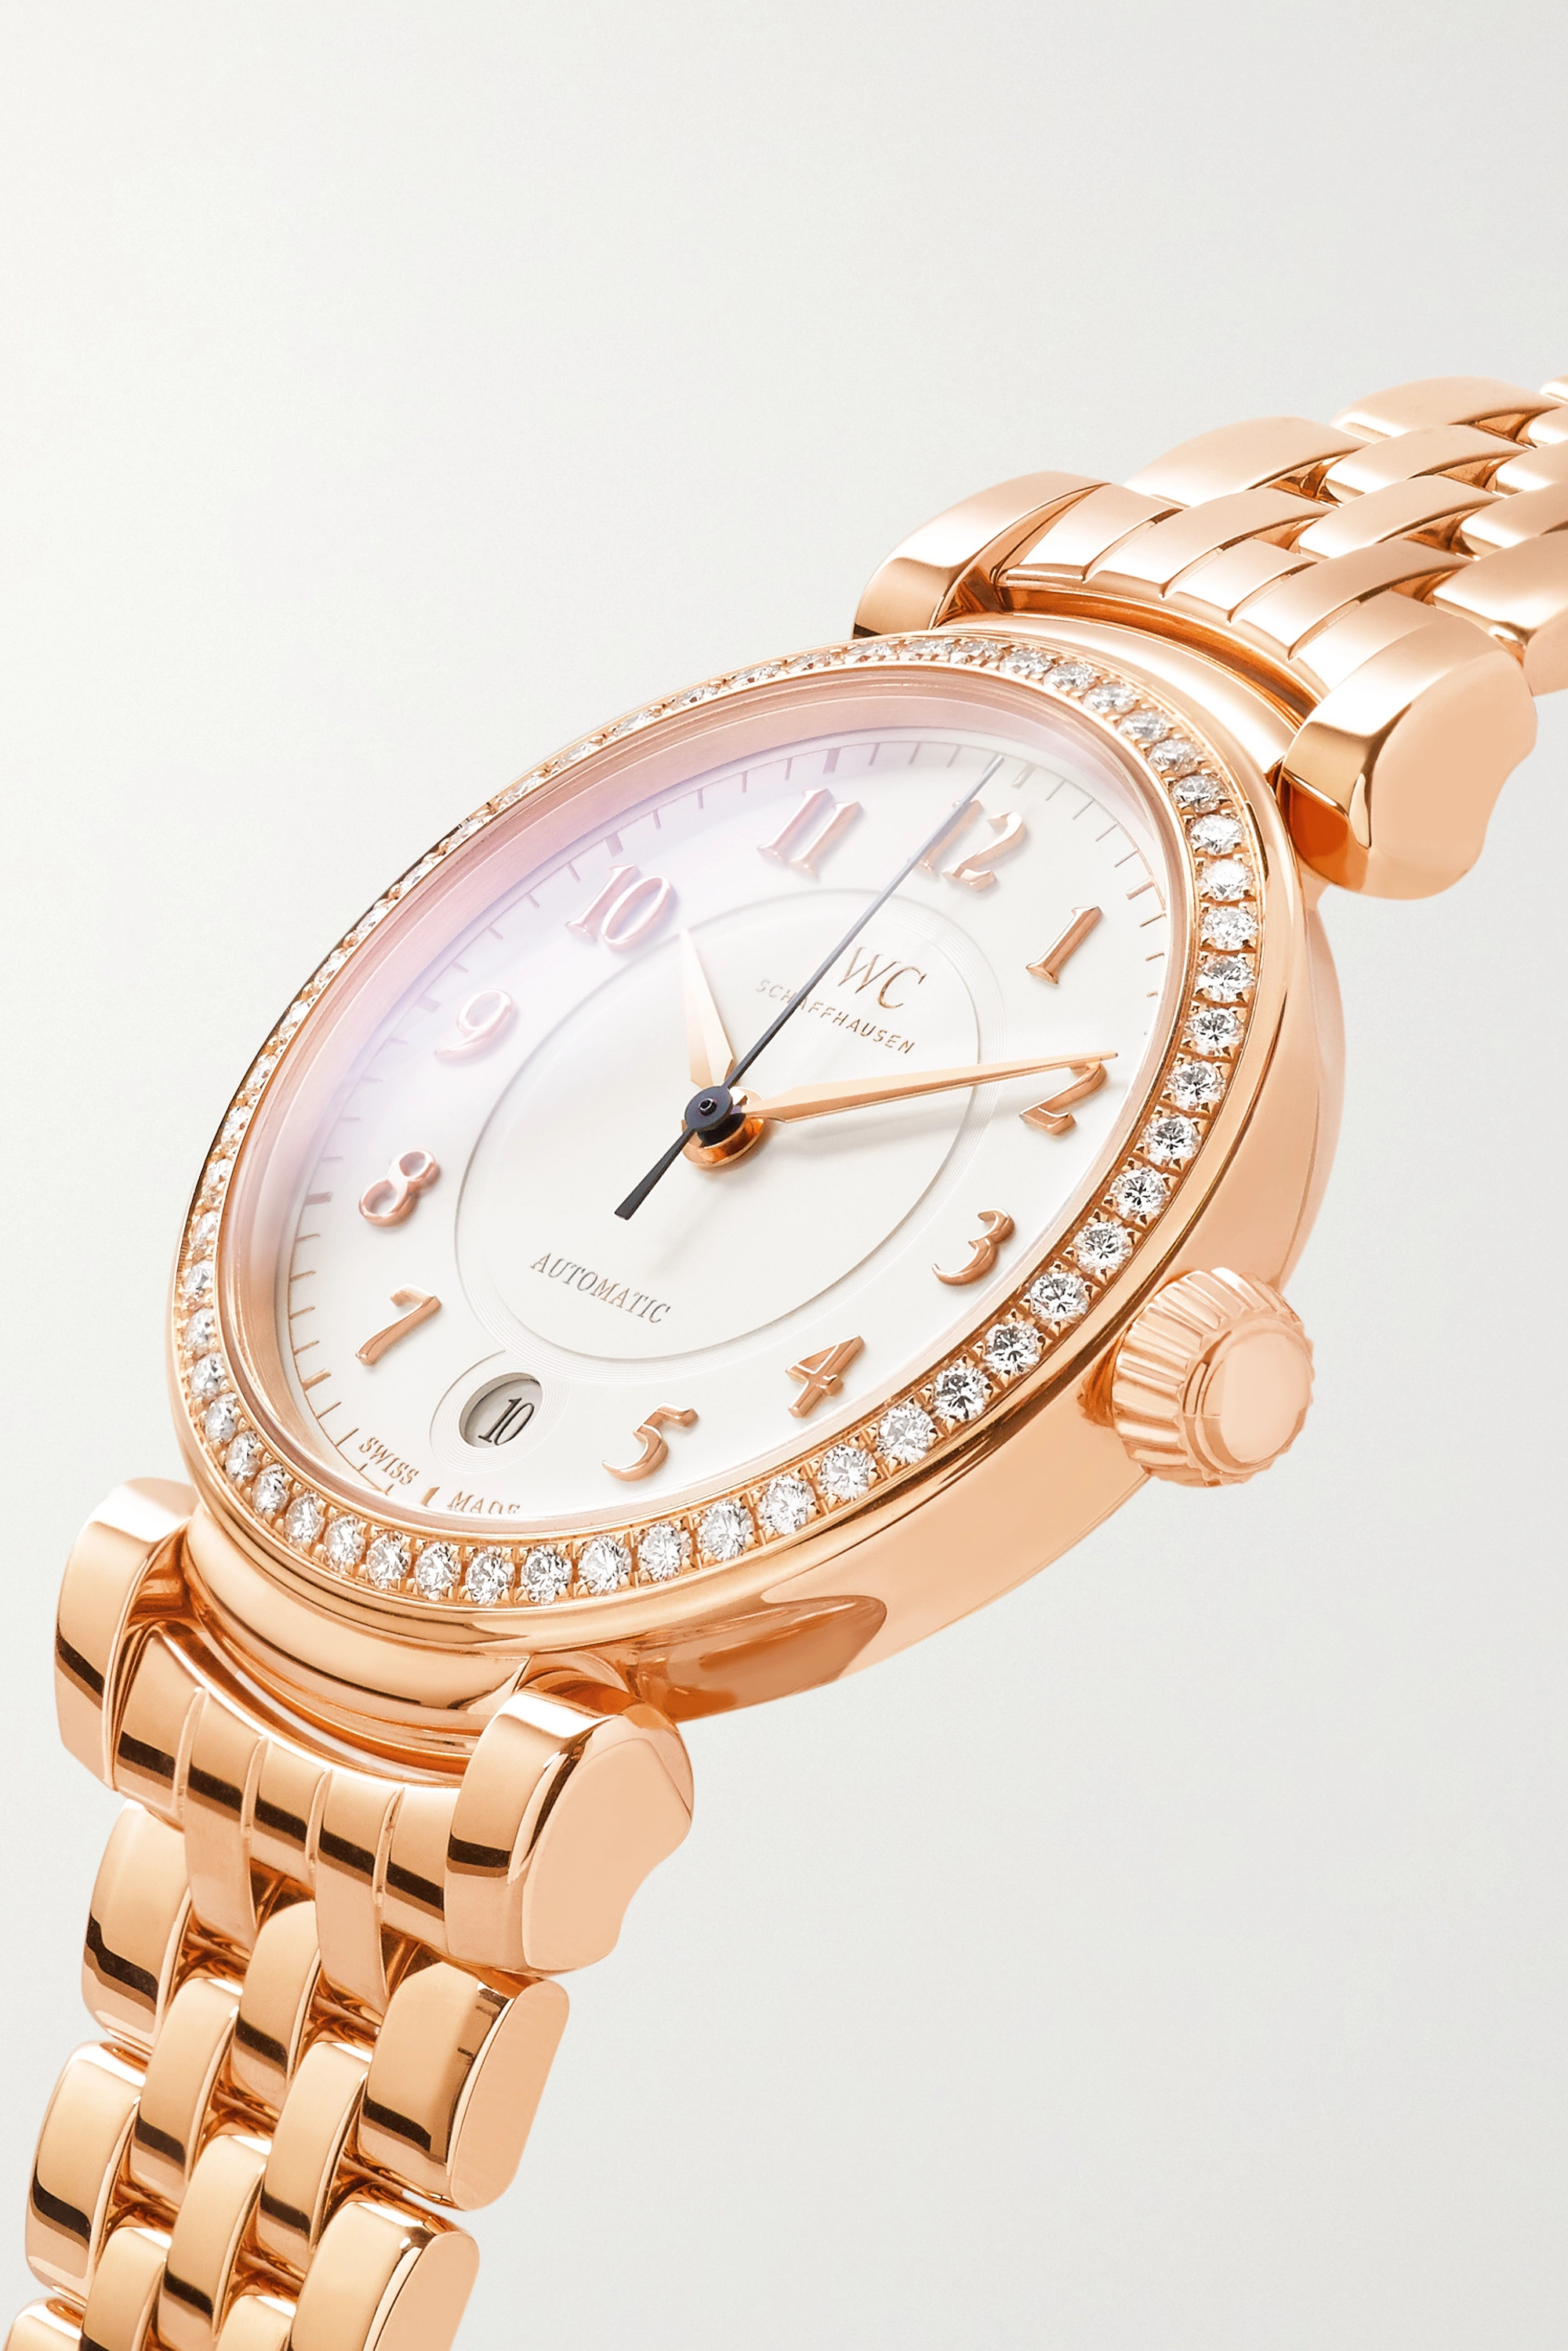 IWC SCHAFFHAUSEN Da Vinci Automatic 36 18-karat red gold diamond watch